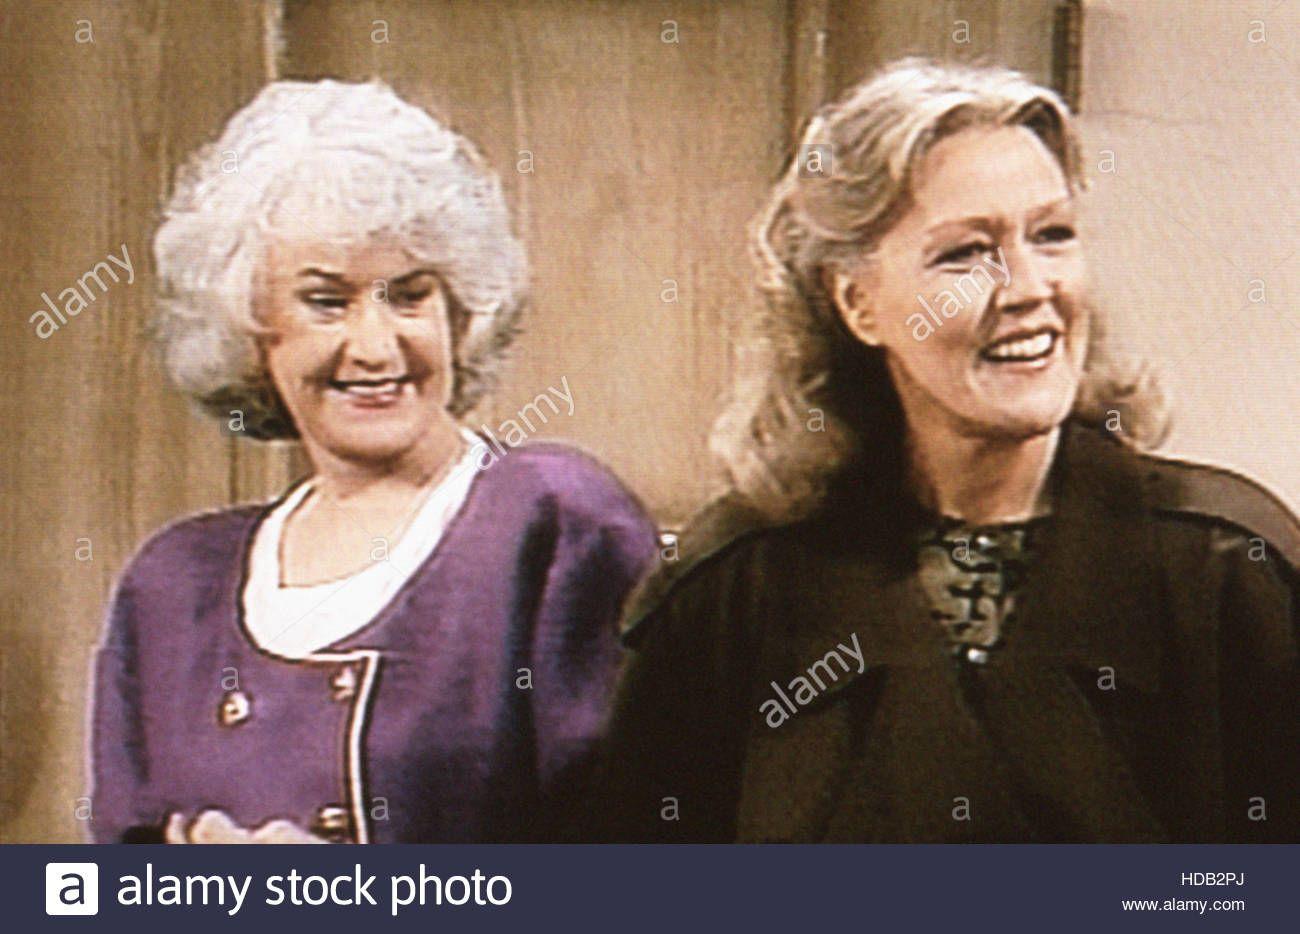 Download This Stock Image The Golden Girls From Left Bea